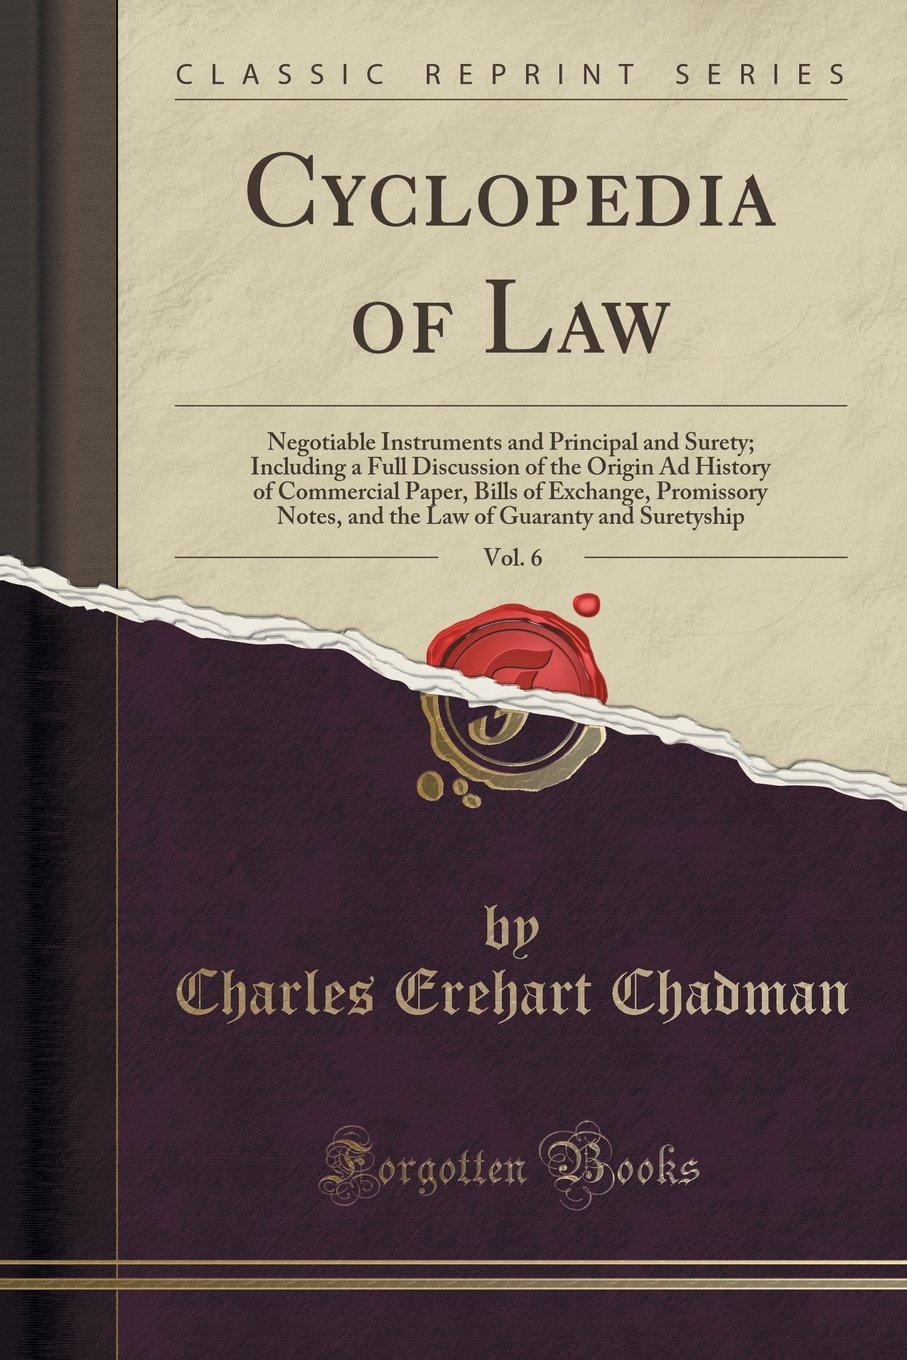 Cyclopedia of Law, Vol. 6: Negotiable Instruments and Principal and Surety; Including a Full Discussion of the Origin Ad History of Commercial Paper, ... of Guaranty and Suretyship (Classic Reprint) pdf